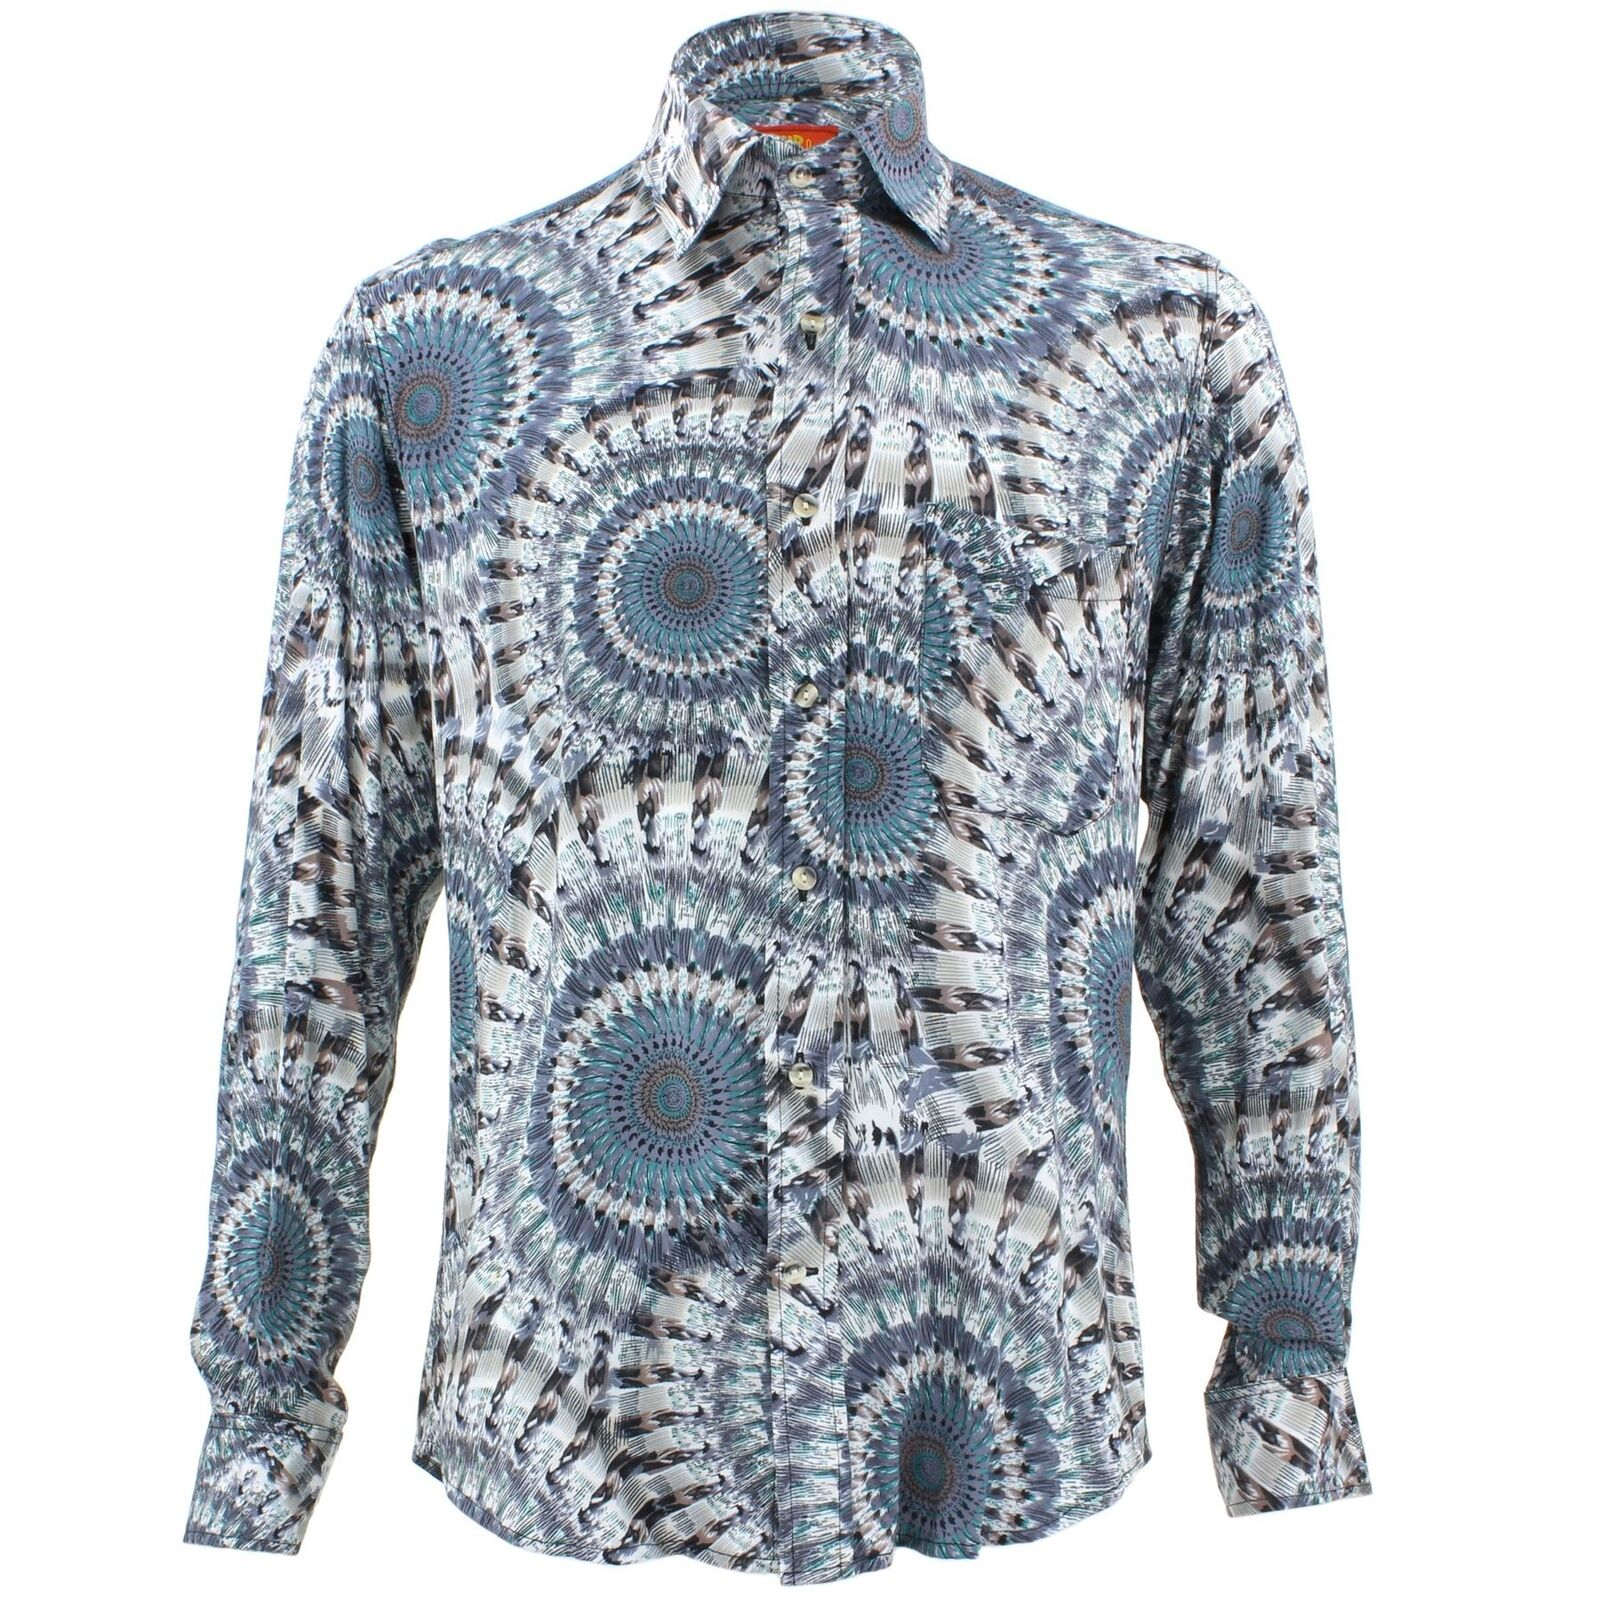 Men's Loud Shirt Retro Psychedelic Funky Party TAILORED FIT bluee Rings Circles